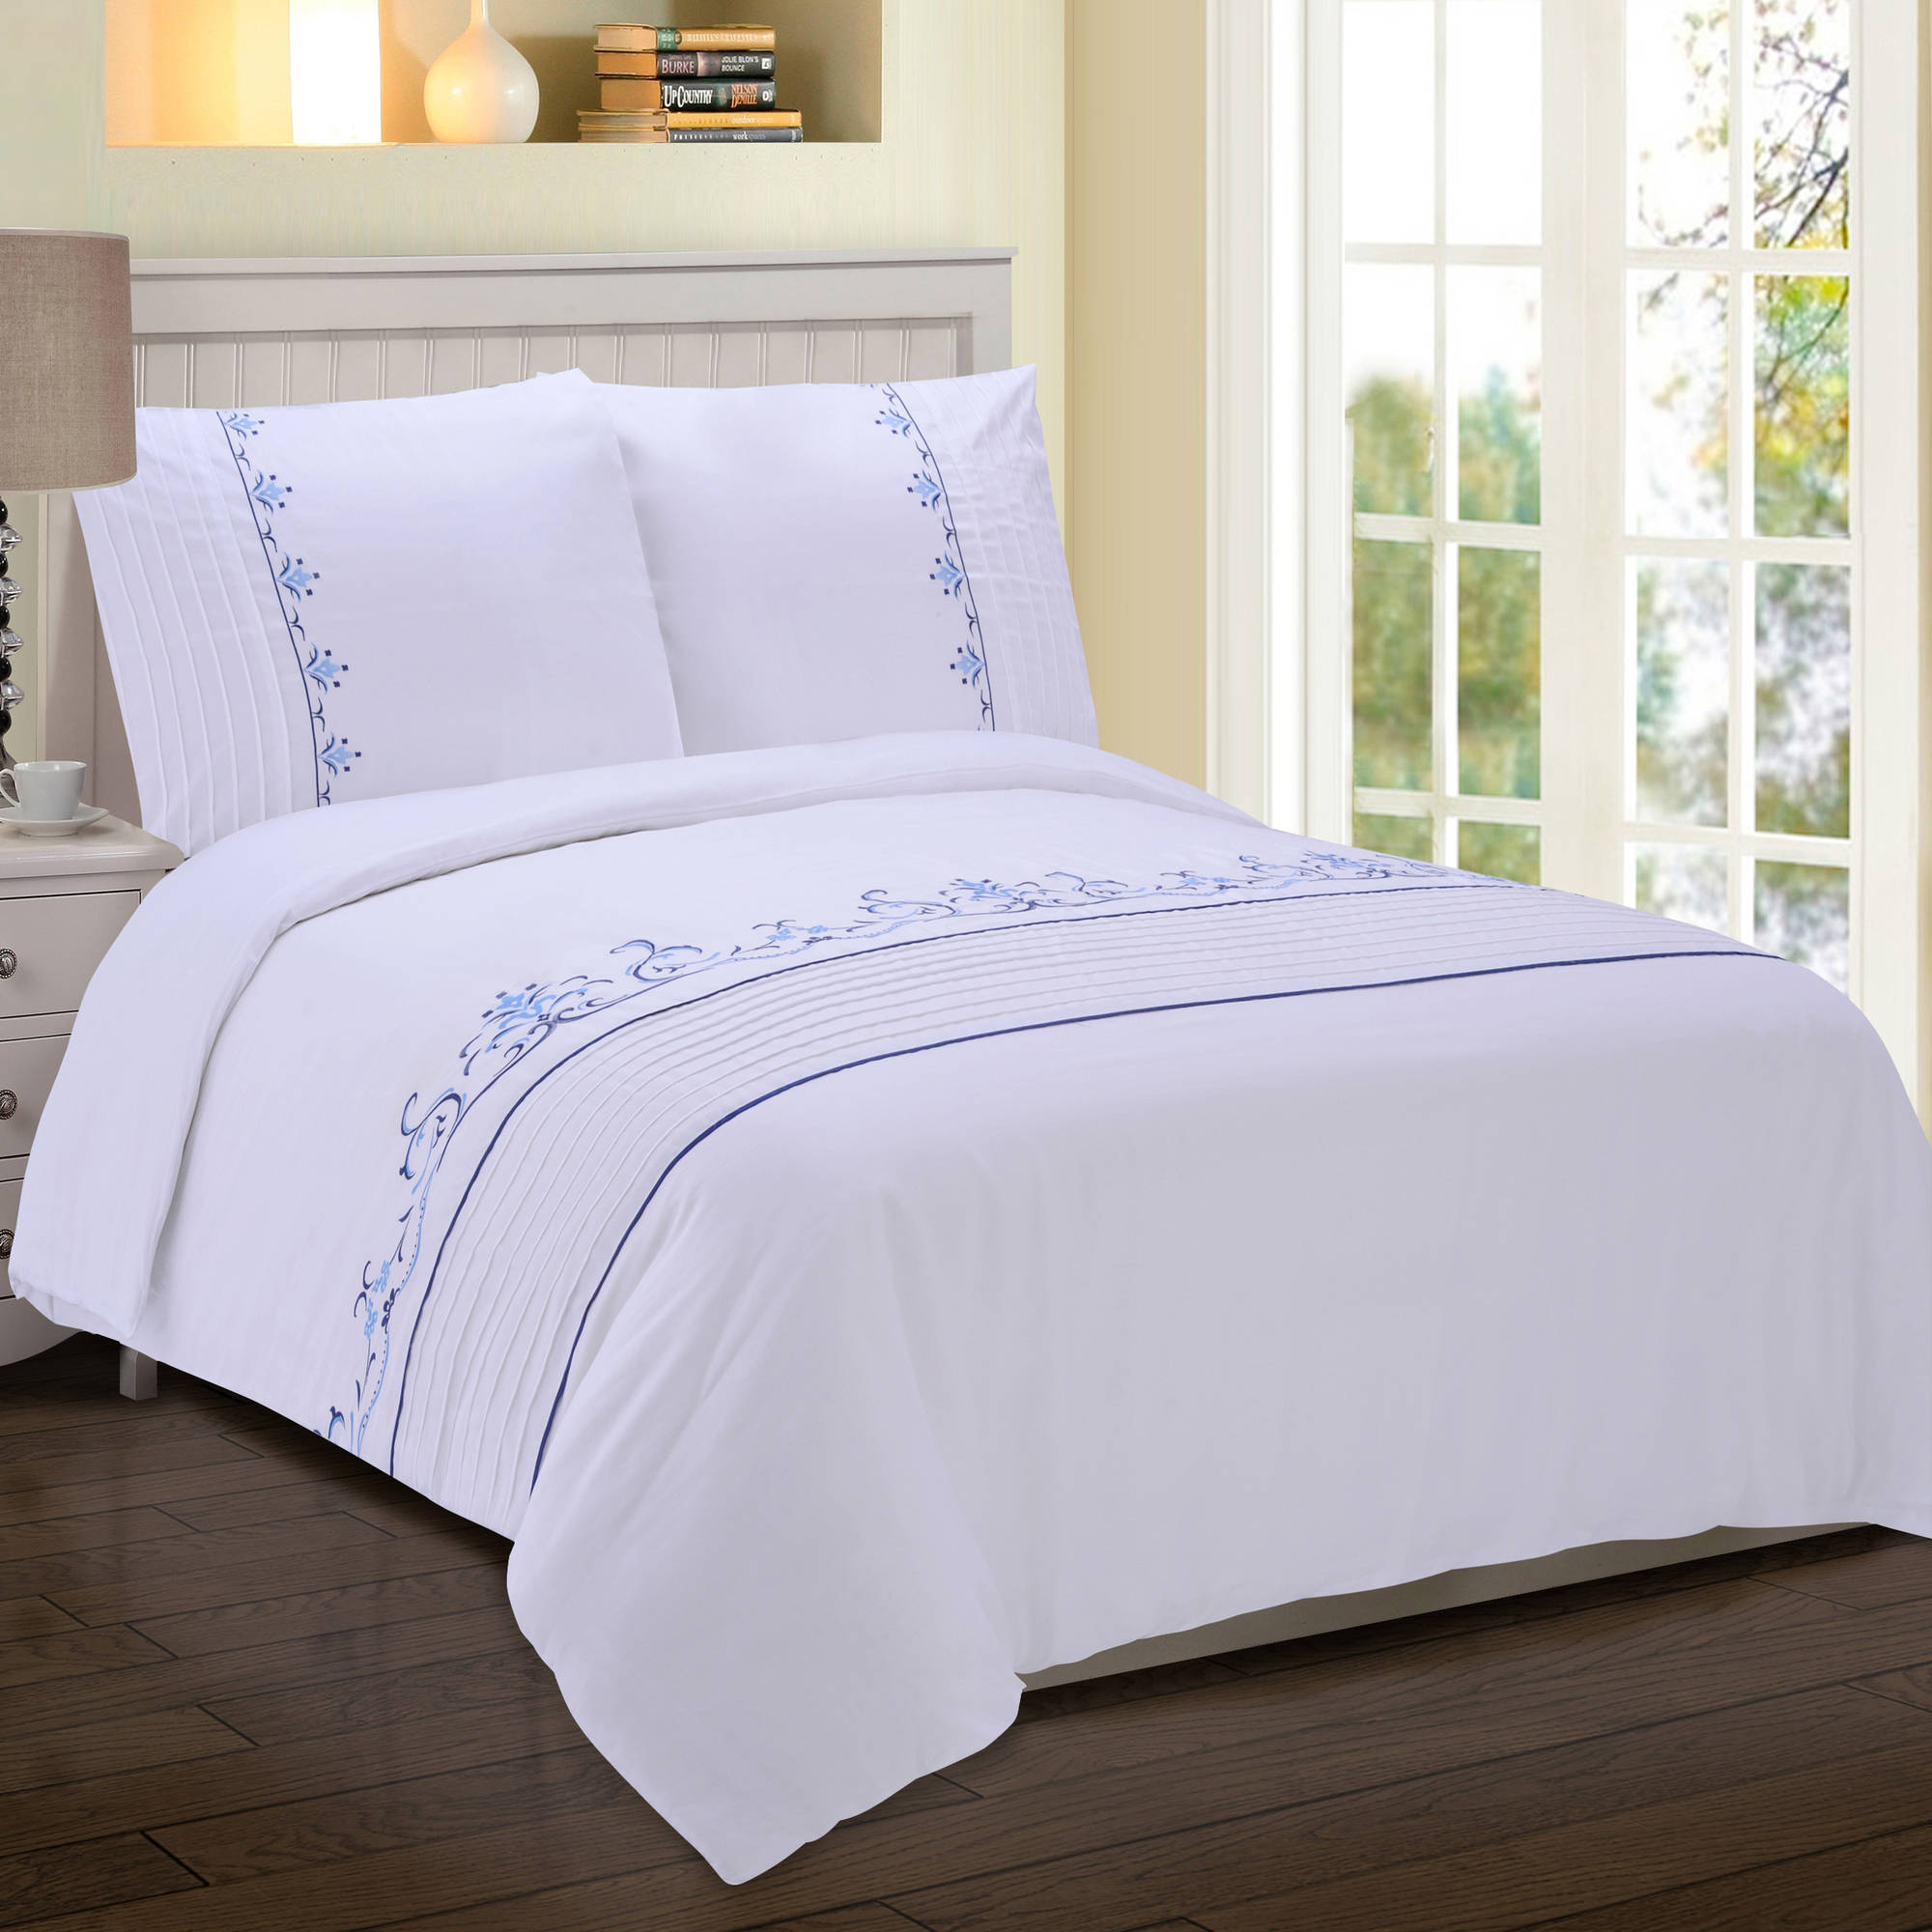 Superior Sofia 300-Thread-Count Cotton Sateen Embroidered Duvet Cover Set